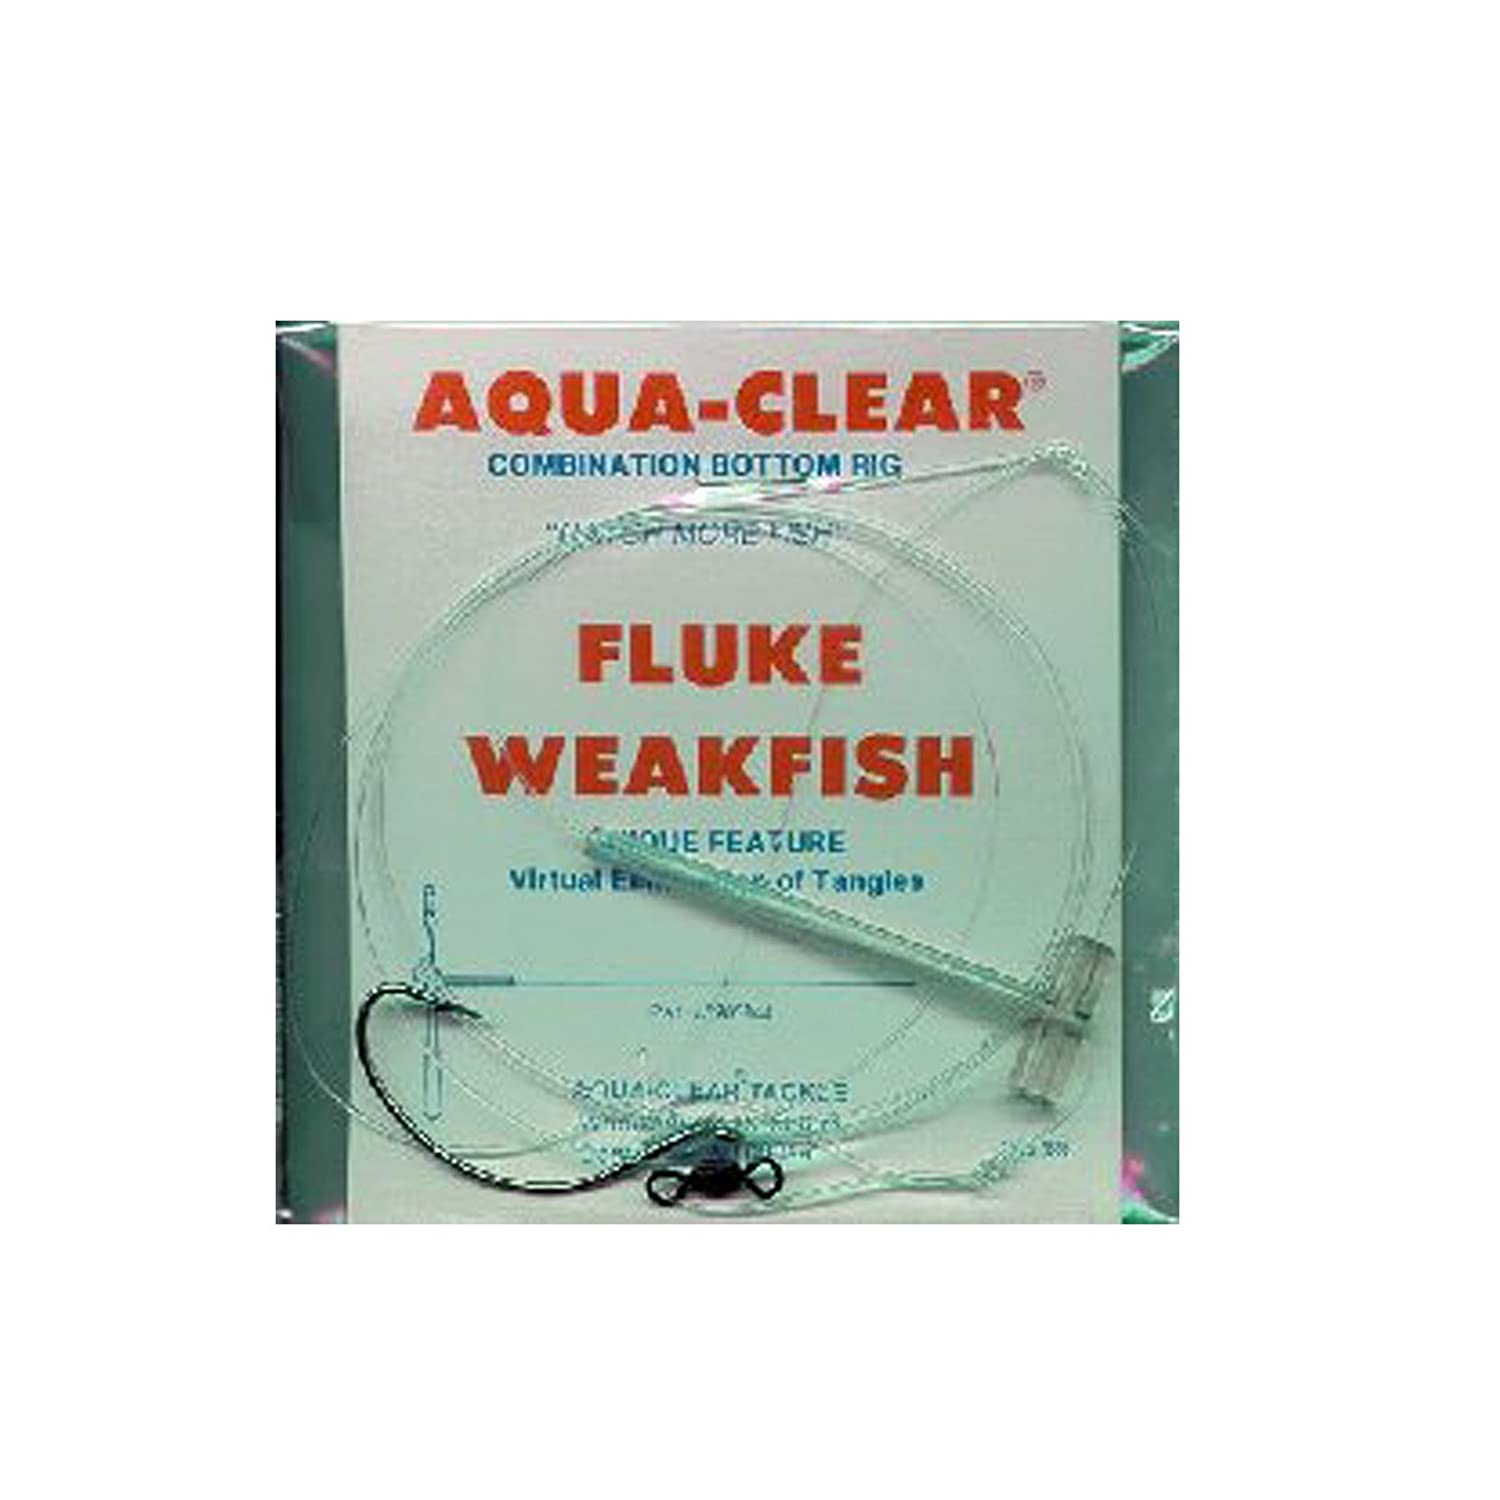 AquaClear Fluke/Weakfish Rigs Single Leader Plain or Pearl/Spinner Stainless Steel Wide Gap Hook сейф valberg алмаз 1668 kl s10699360314